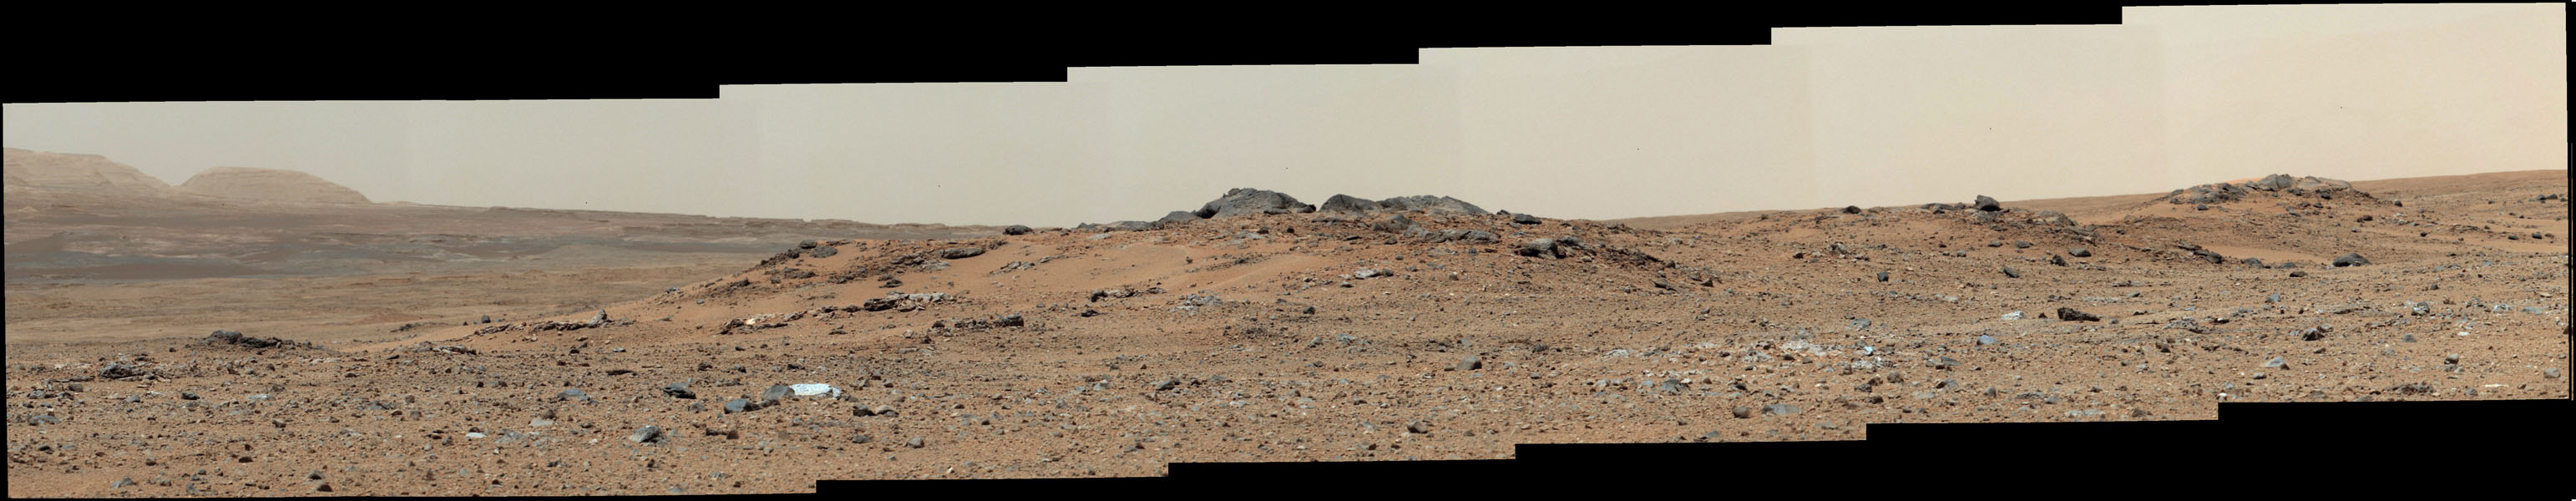 A rise topped by two gray rocks near the center of the scene is informally named 'Twin Cairns Island' as seen by NASA's Mars rover Curiosity. The center of the scene is toward the southwest.